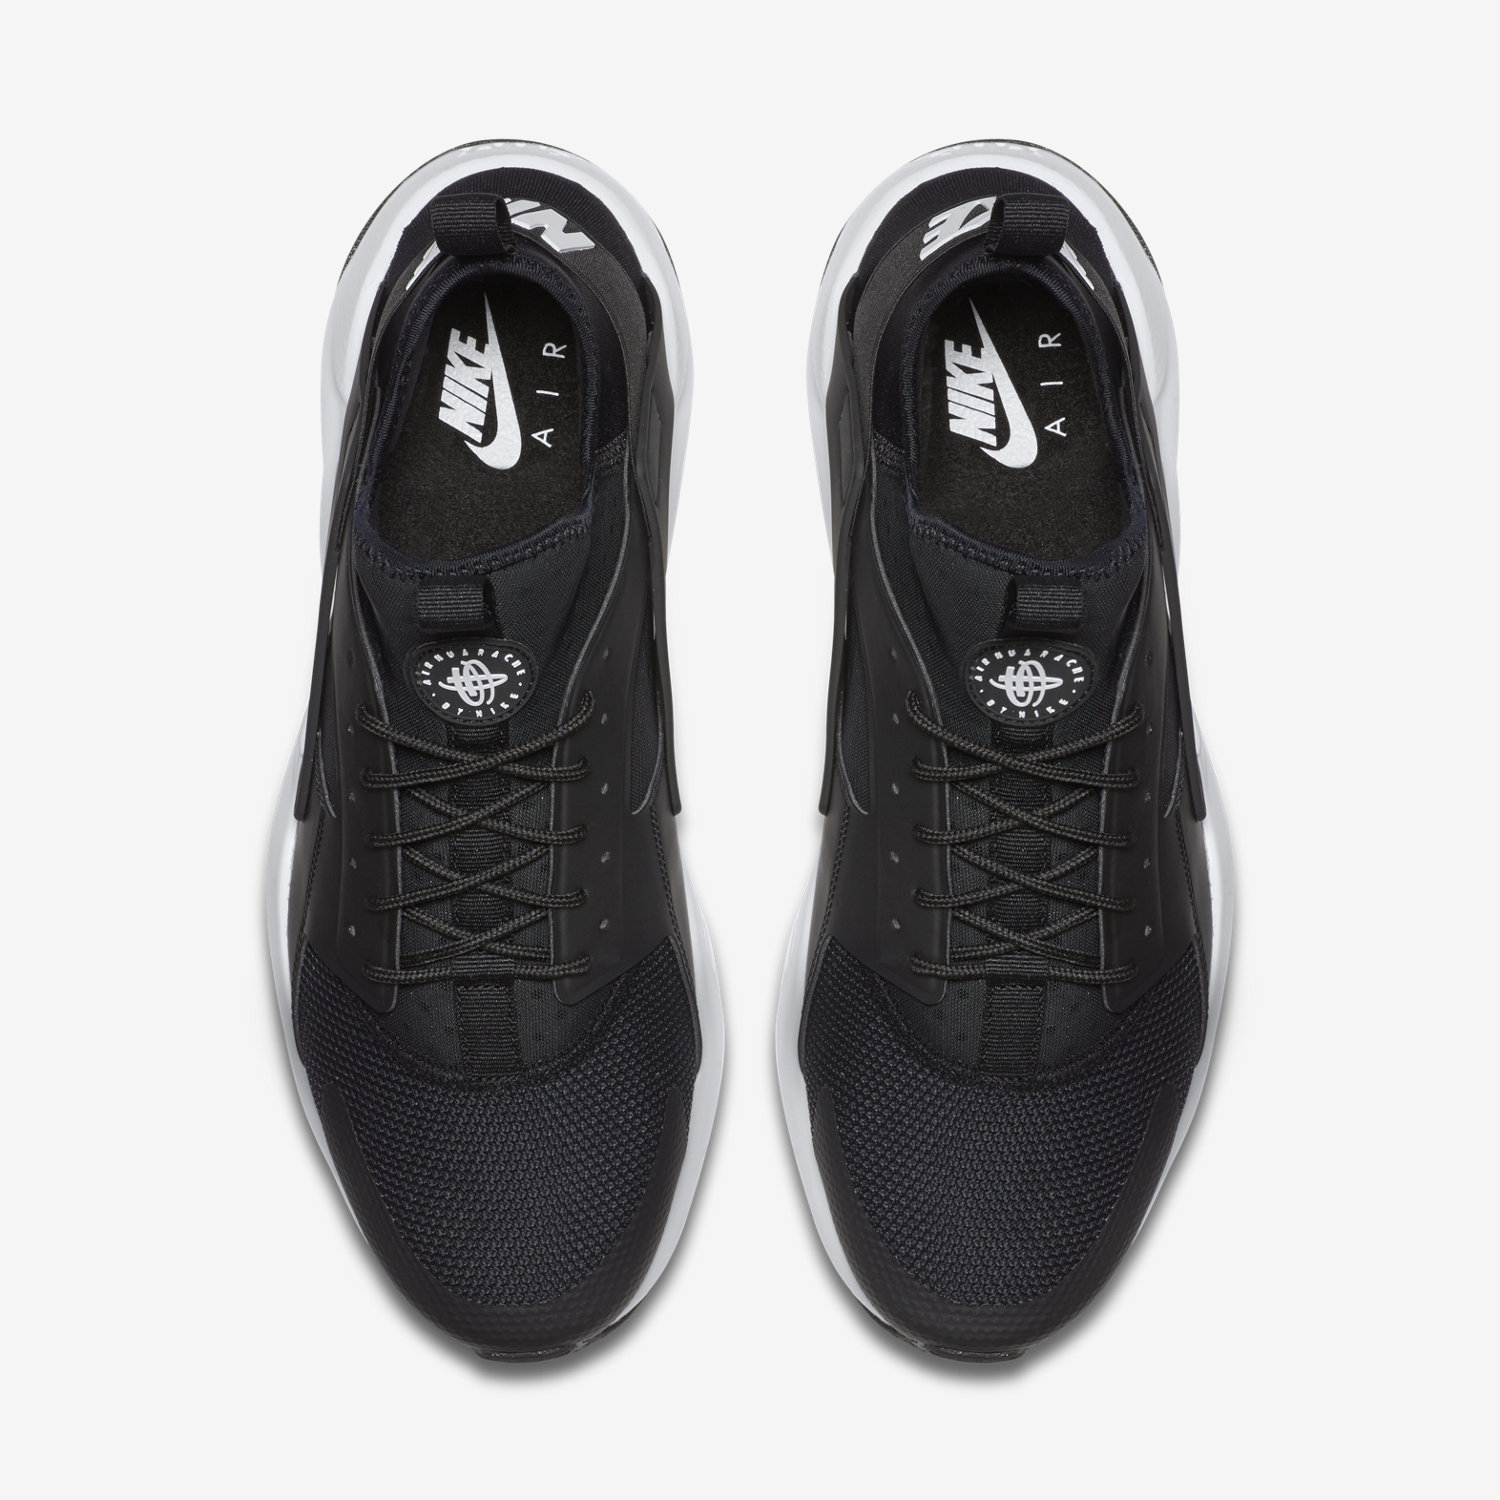 http://images.nike.com/is/image/DotCom/PDP_HERO_ZOOM/NIKE-AIR-HUARACHE-RUN-ULTRA-819685_001_D_PREM.jpg